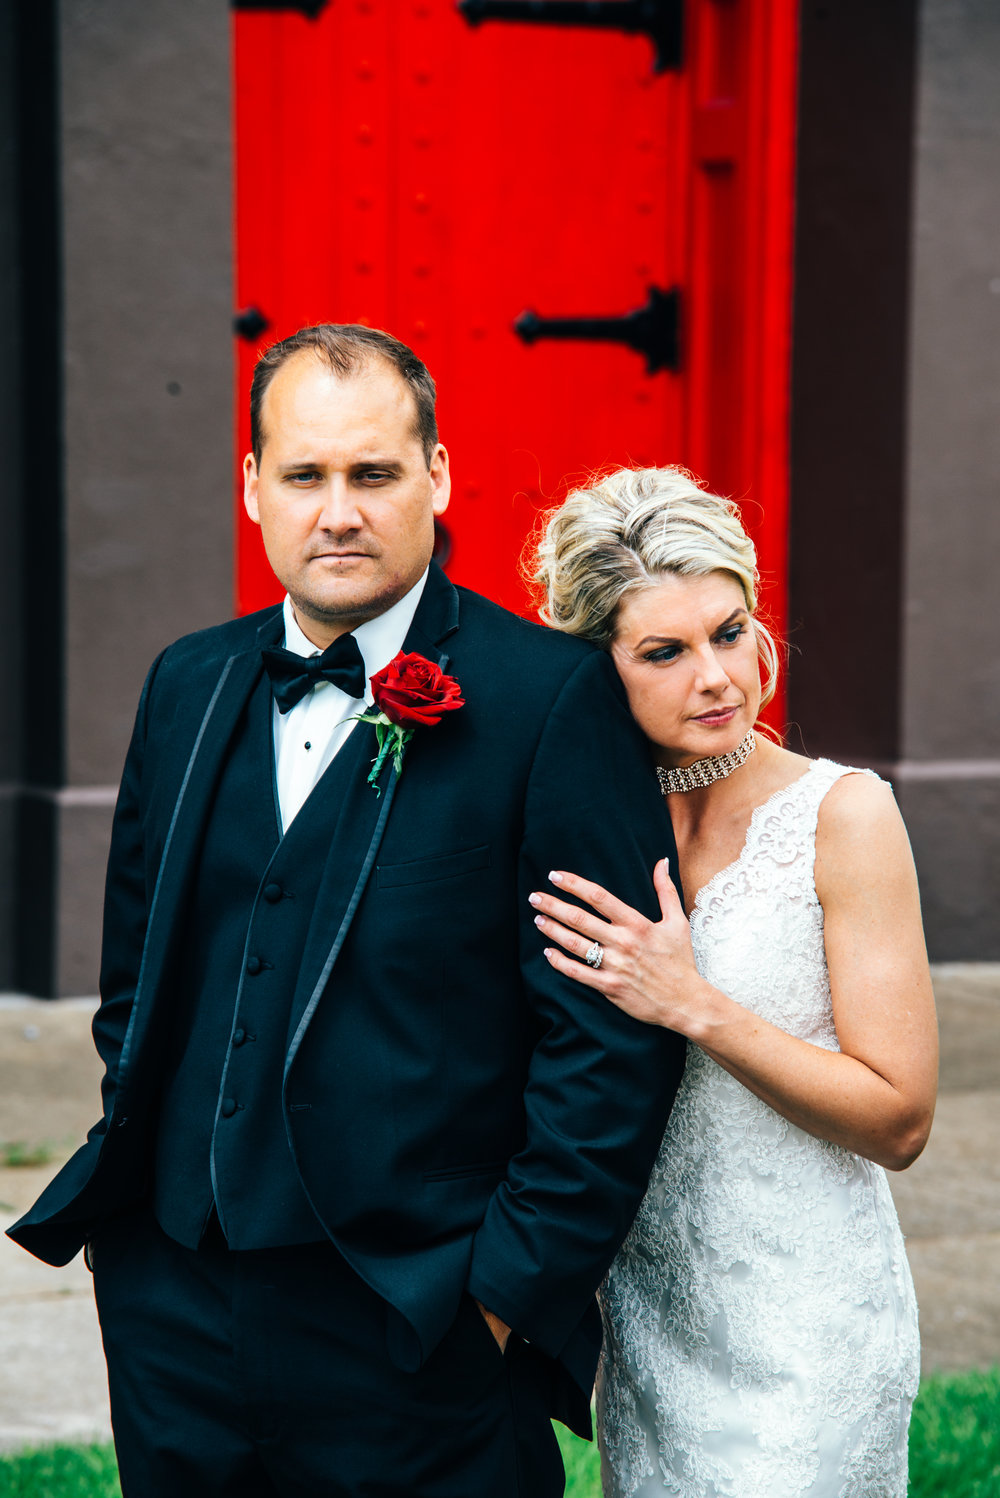 MOST LIKED WEDDING ON SOCIAL MEDIA - Wayne + Cortney | Gatsby Themed Wedding at People's Natural Gas Park